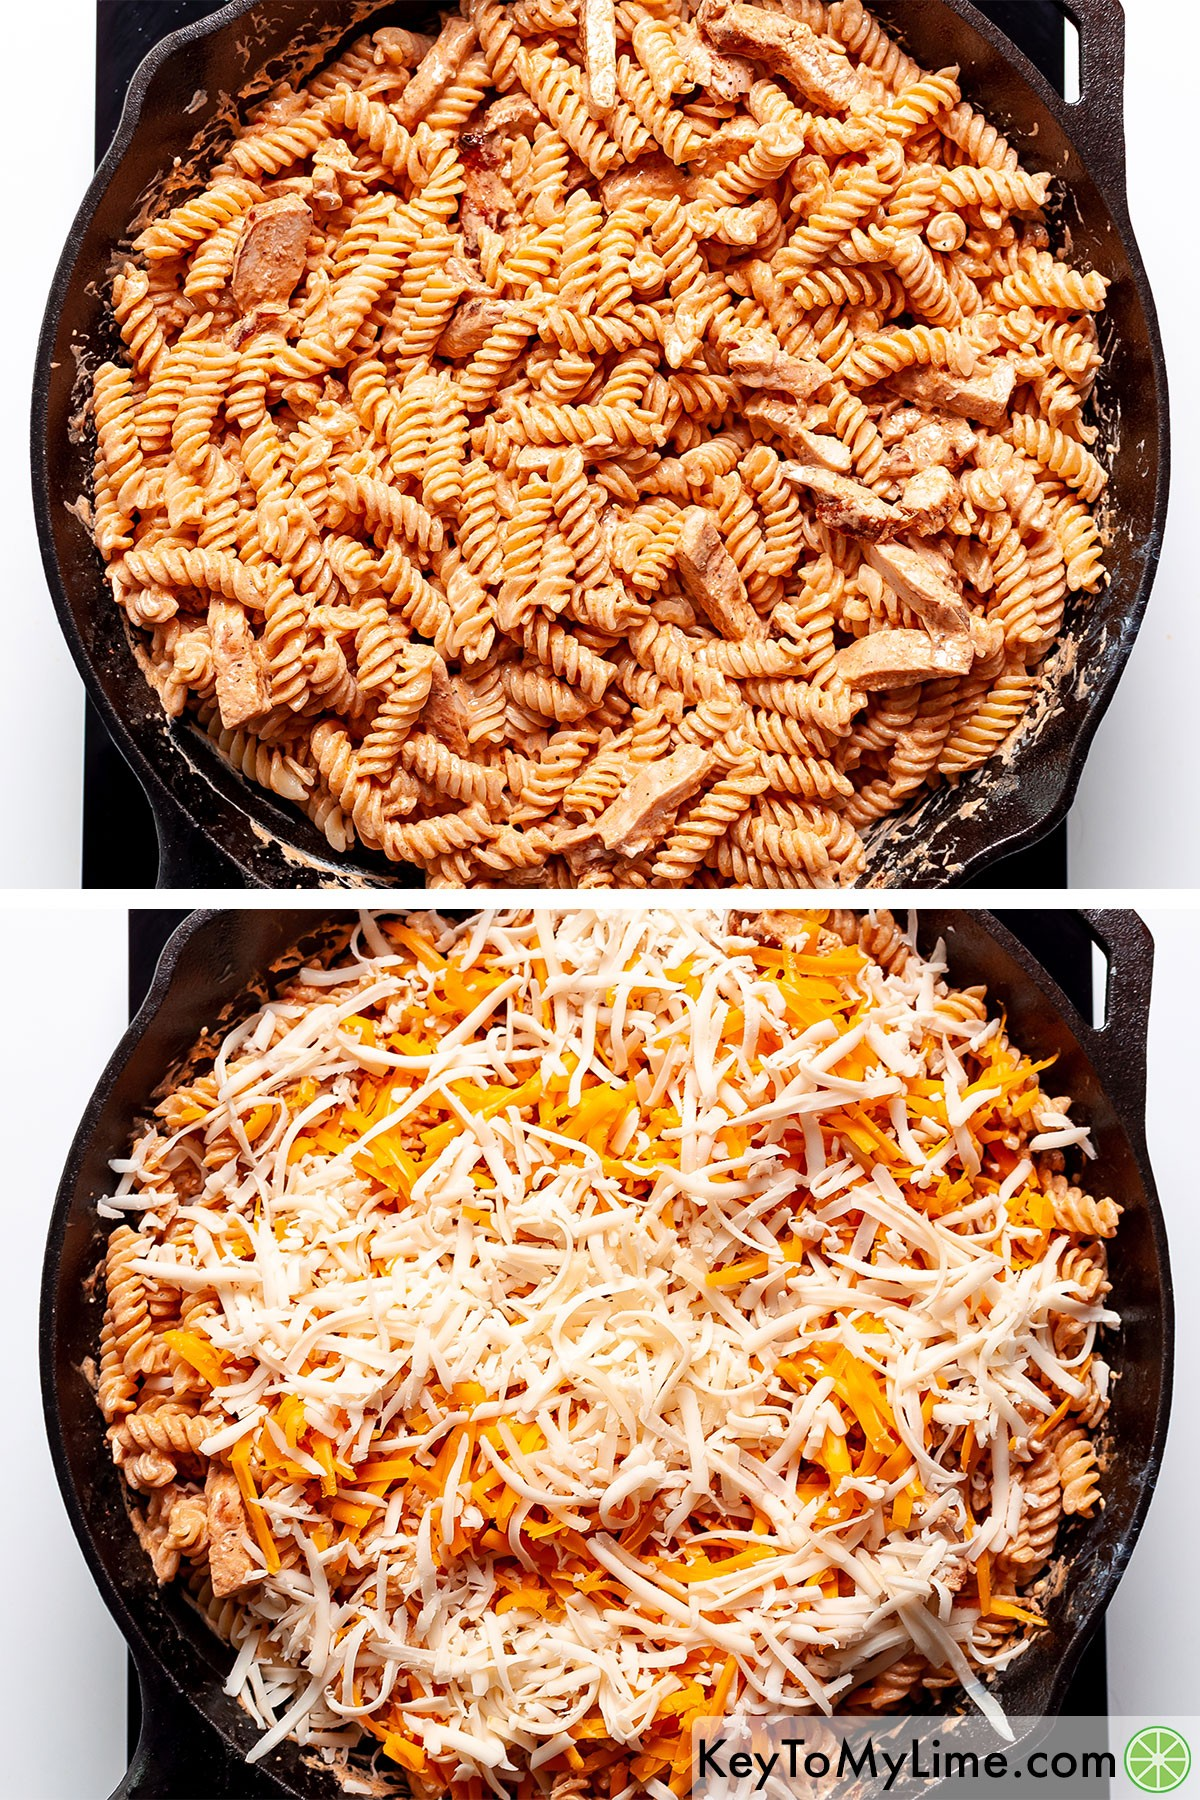 Adding shredded cheese on top of buffalo chicken pasta.